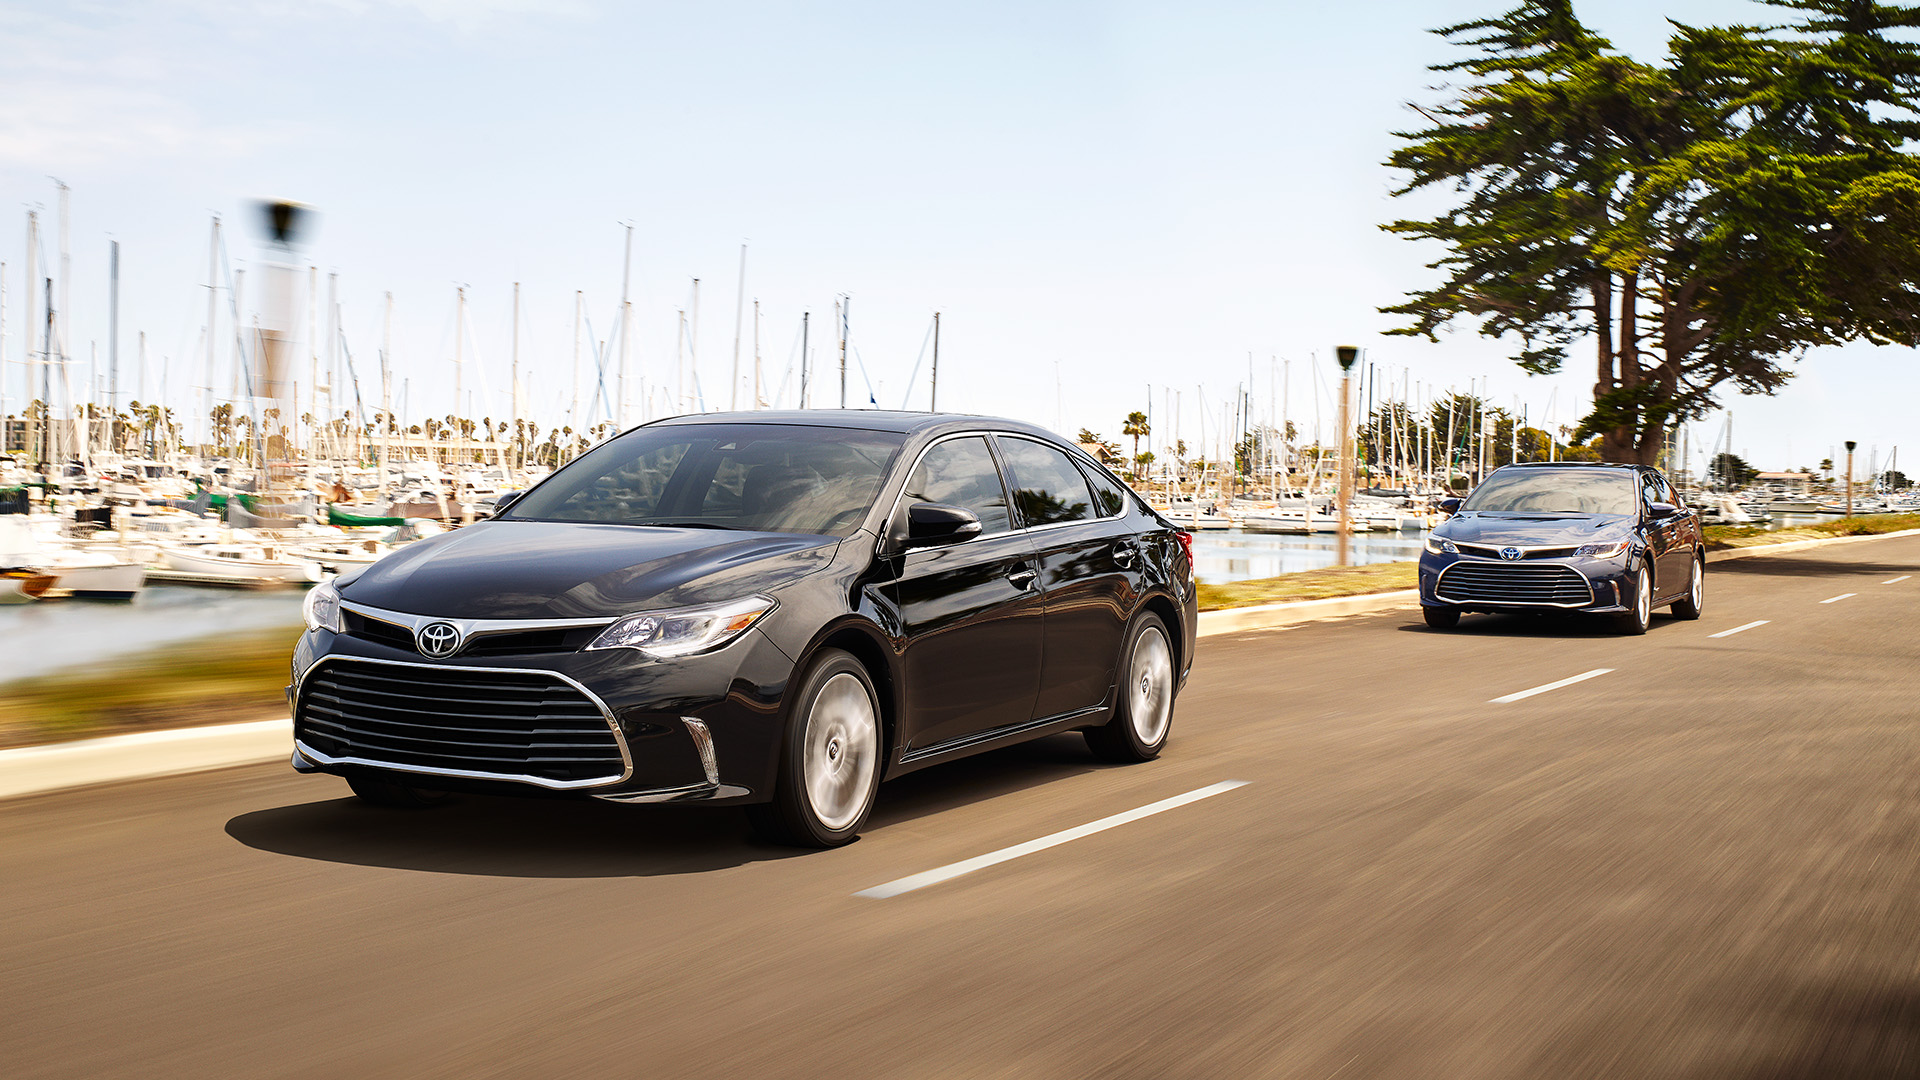 2017 toyota avalon overview the news wheel. Black Bedroom Furniture Sets. Home Design Ideas